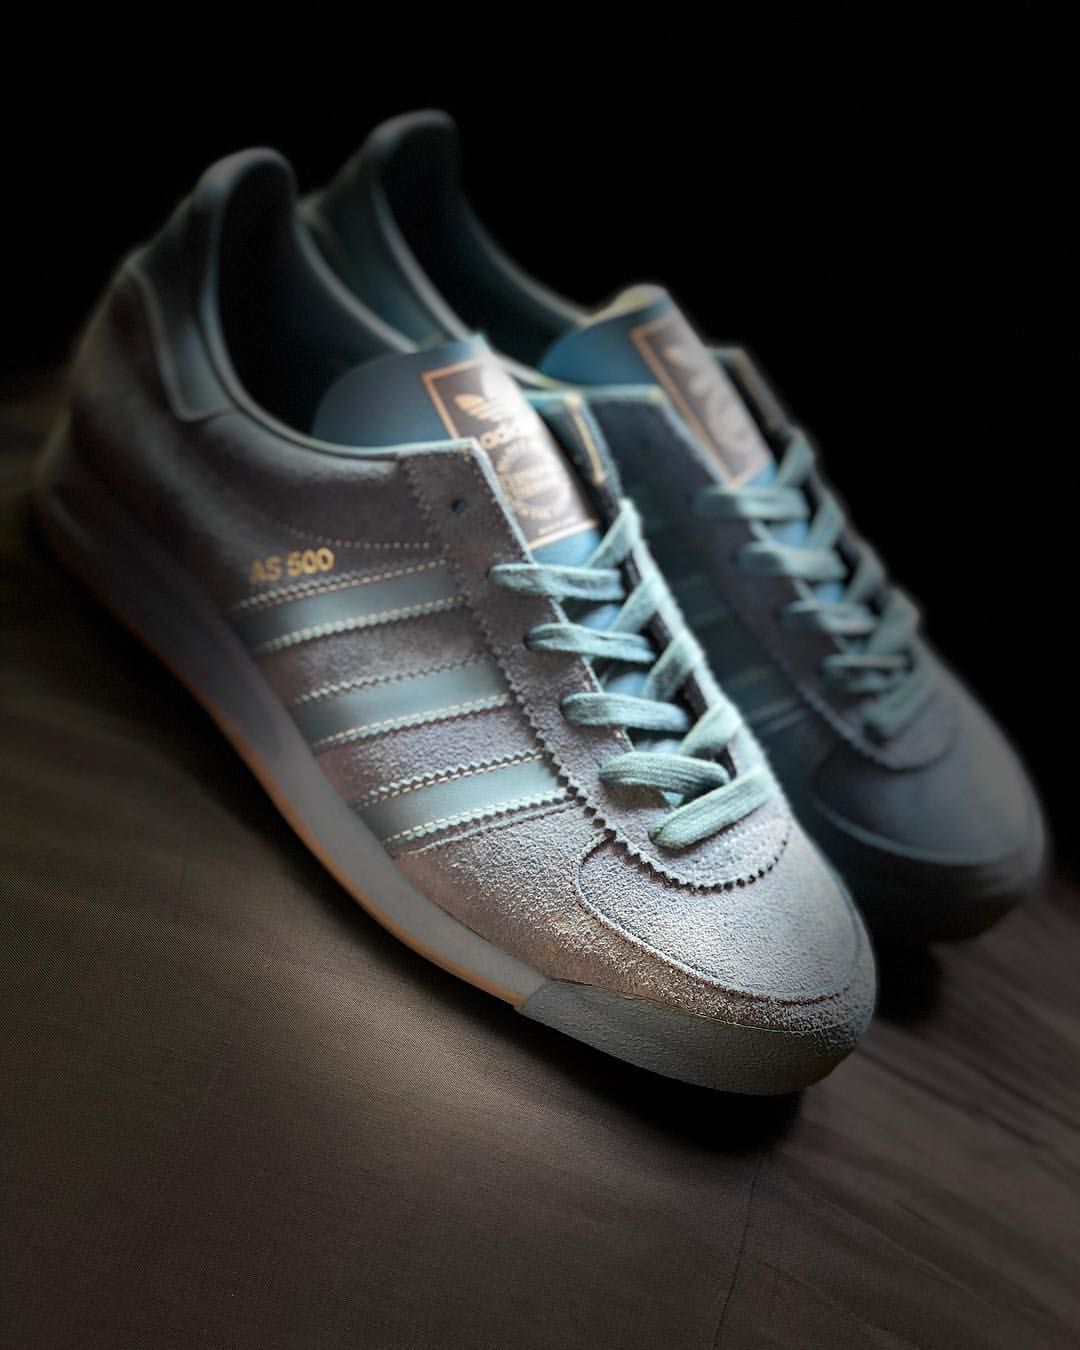 info for a76e3 53695 adidas AS500   Adidas   Adidas sneakers, Adidas, Sneakers